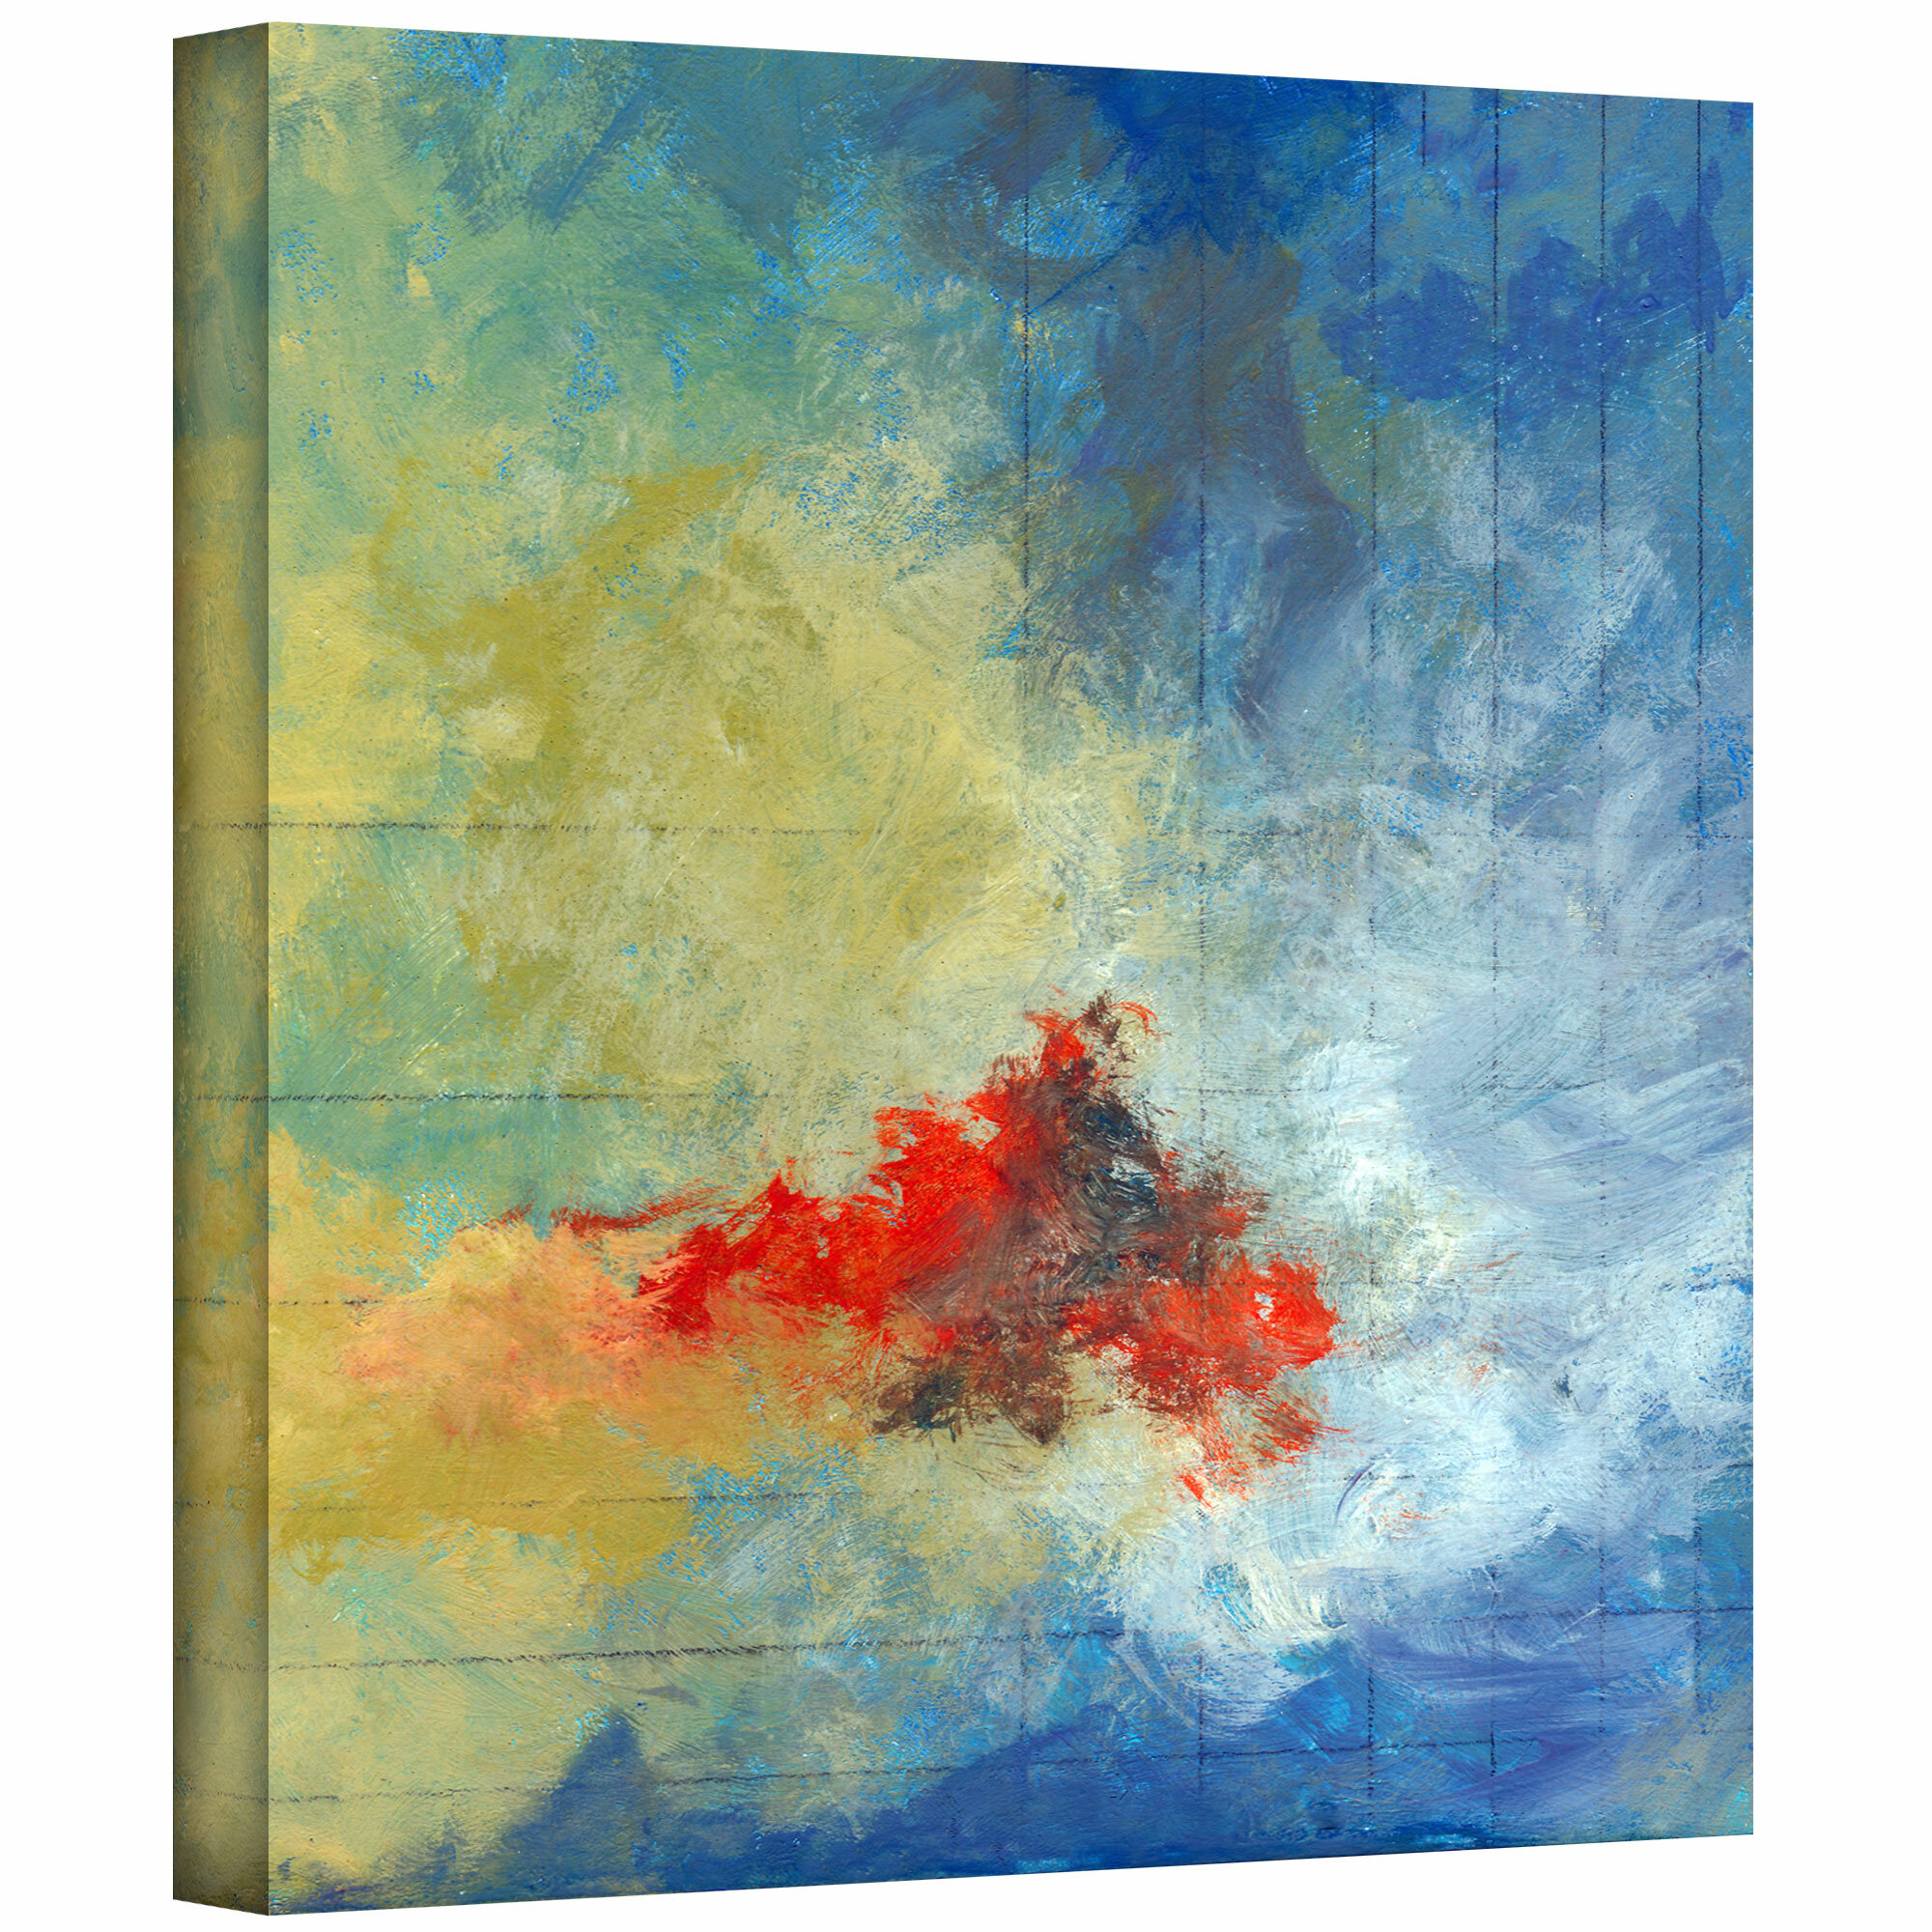 Artwall Earth And Lines Ii By Jan Weiss Painting Print On Wrapped Canvas Wayfair